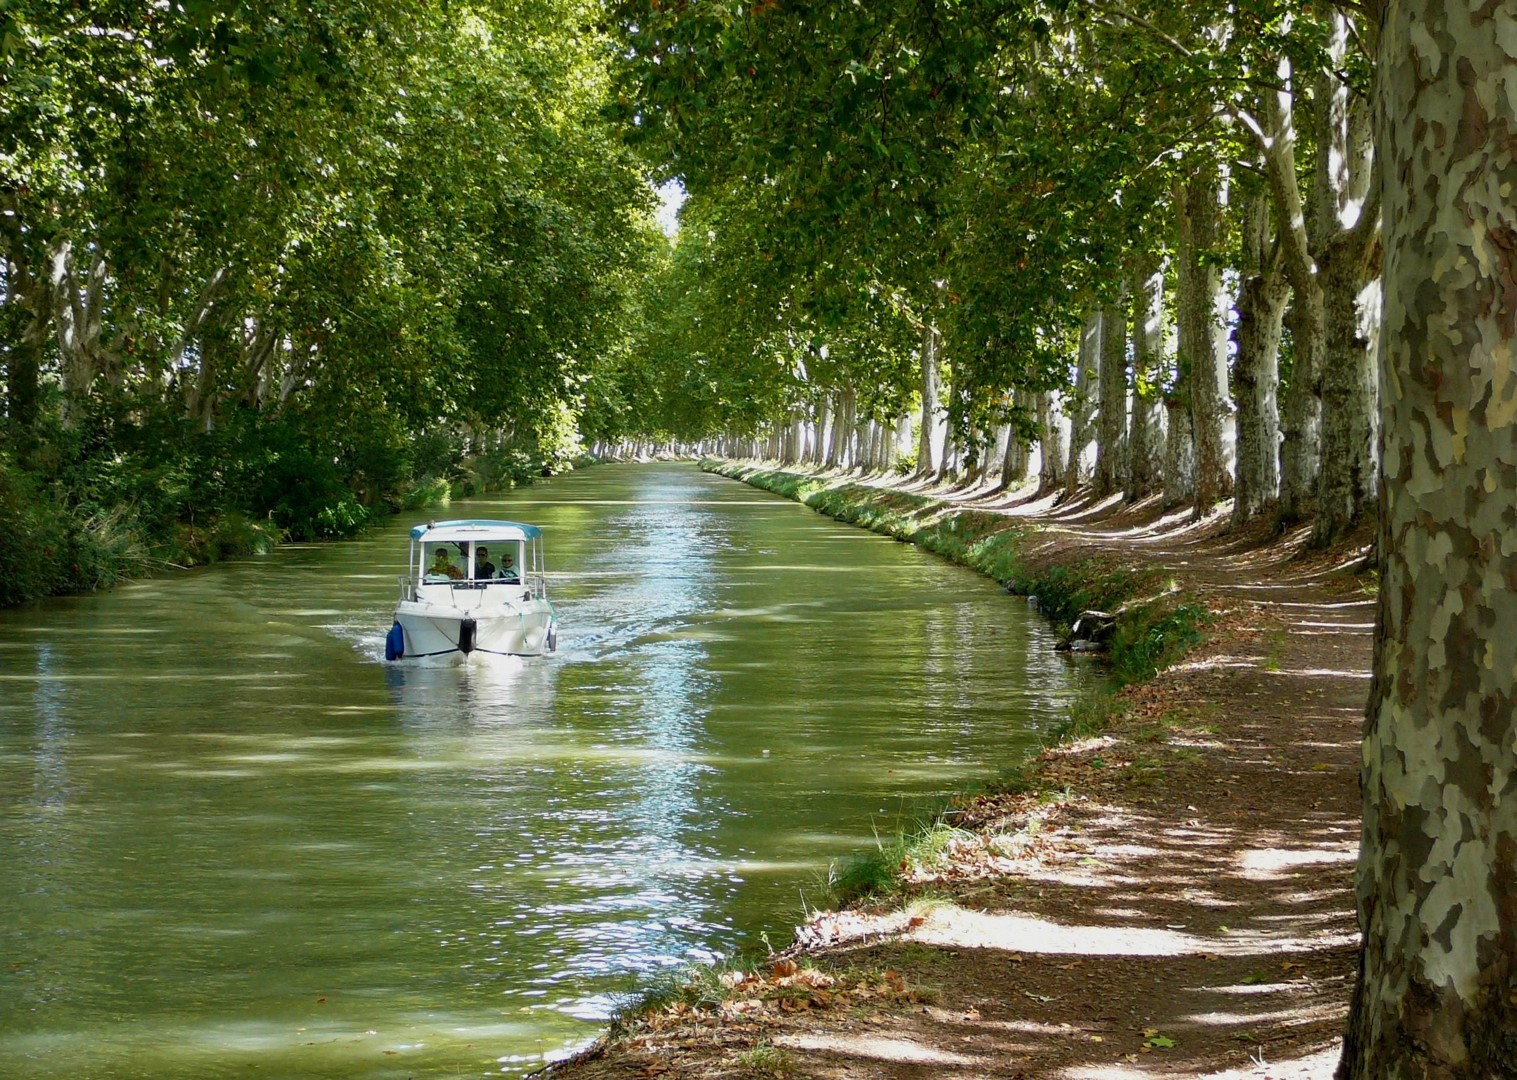 ancy-le-franc-leisure-cycling-holiday-in-france.jpg - France - Burgundy - Caves and Canals - Self-Guided Leisure Cycling Holiday - Leisure Cycling